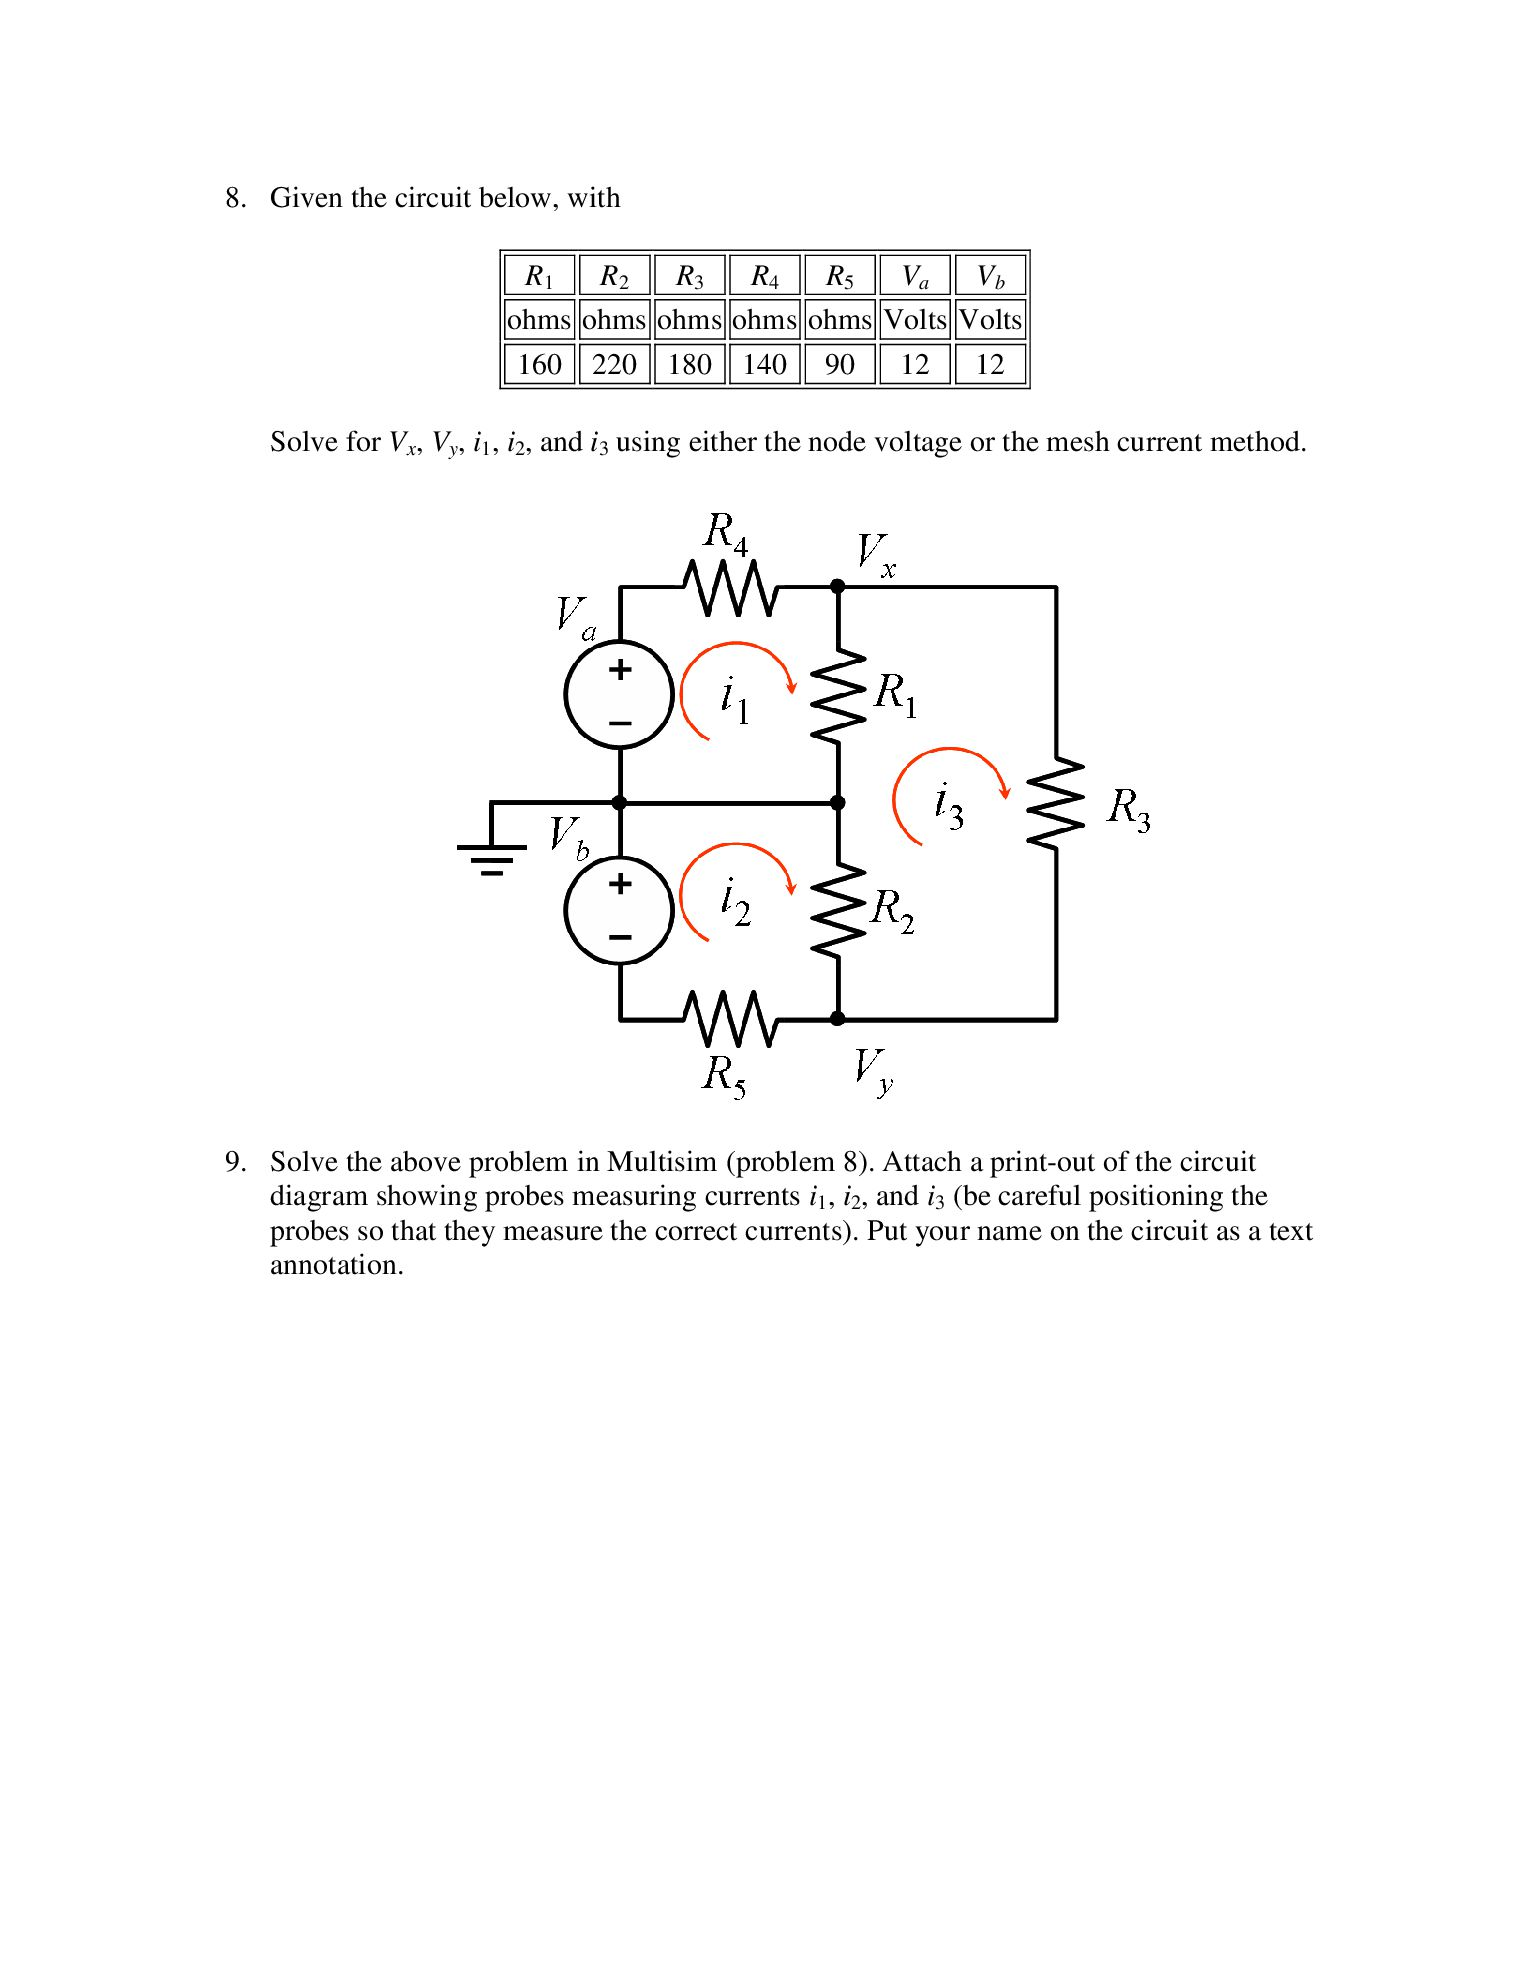 Determine the Thevenin voltage and resistance of t